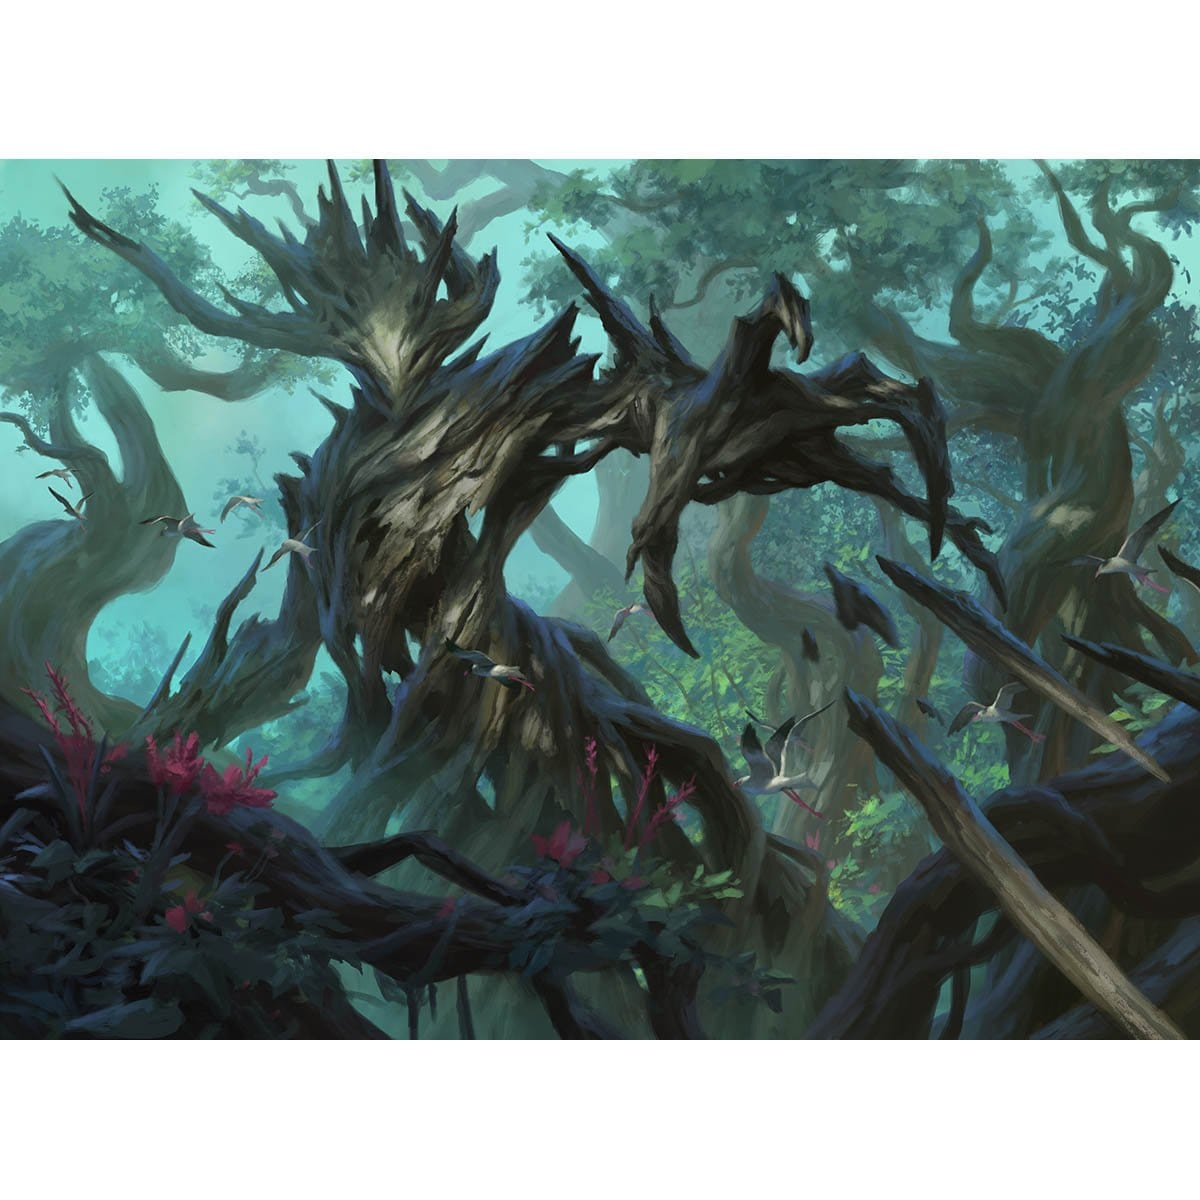 Thorn Elemental Print - Print - Original Magic Art - Accessories for Magic the Gathering and other card games